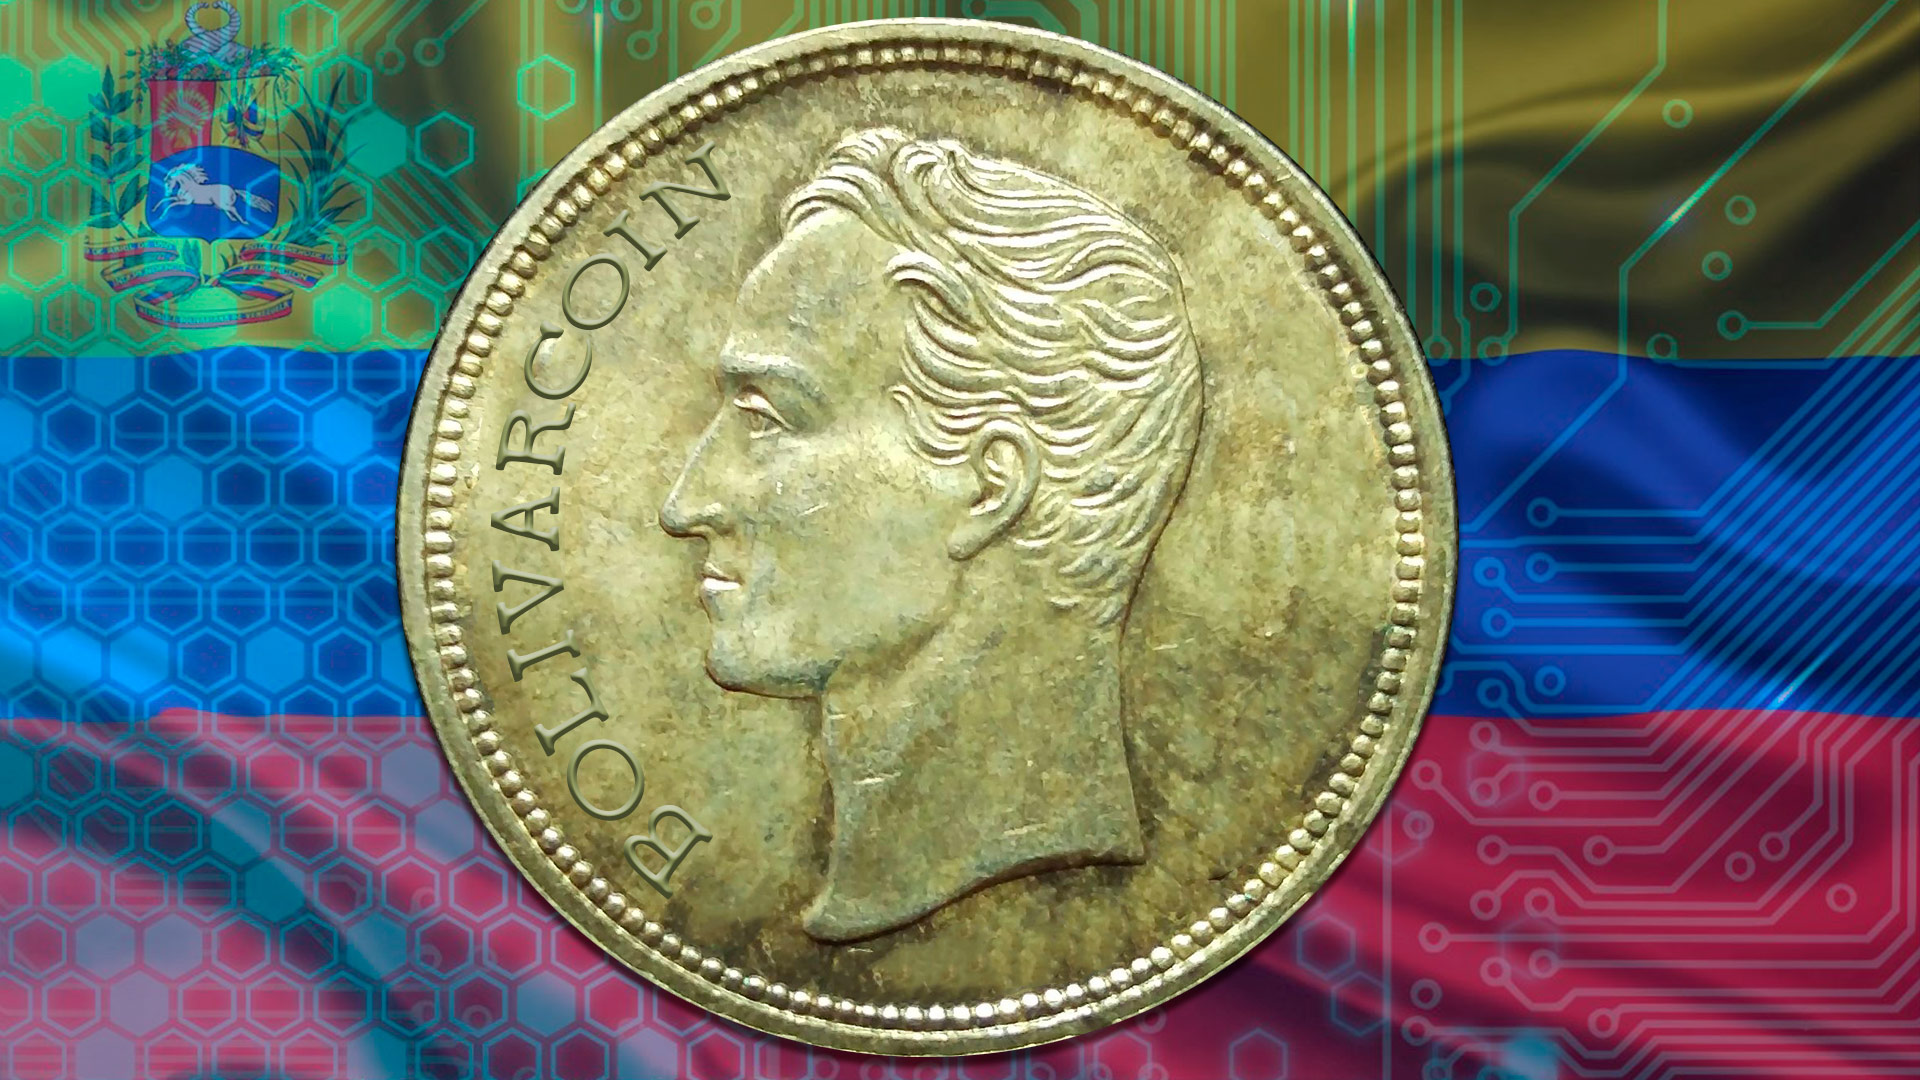 Blockchain, Criptocurrency and Bolivarcoin: The Digital Economy Is About to Change